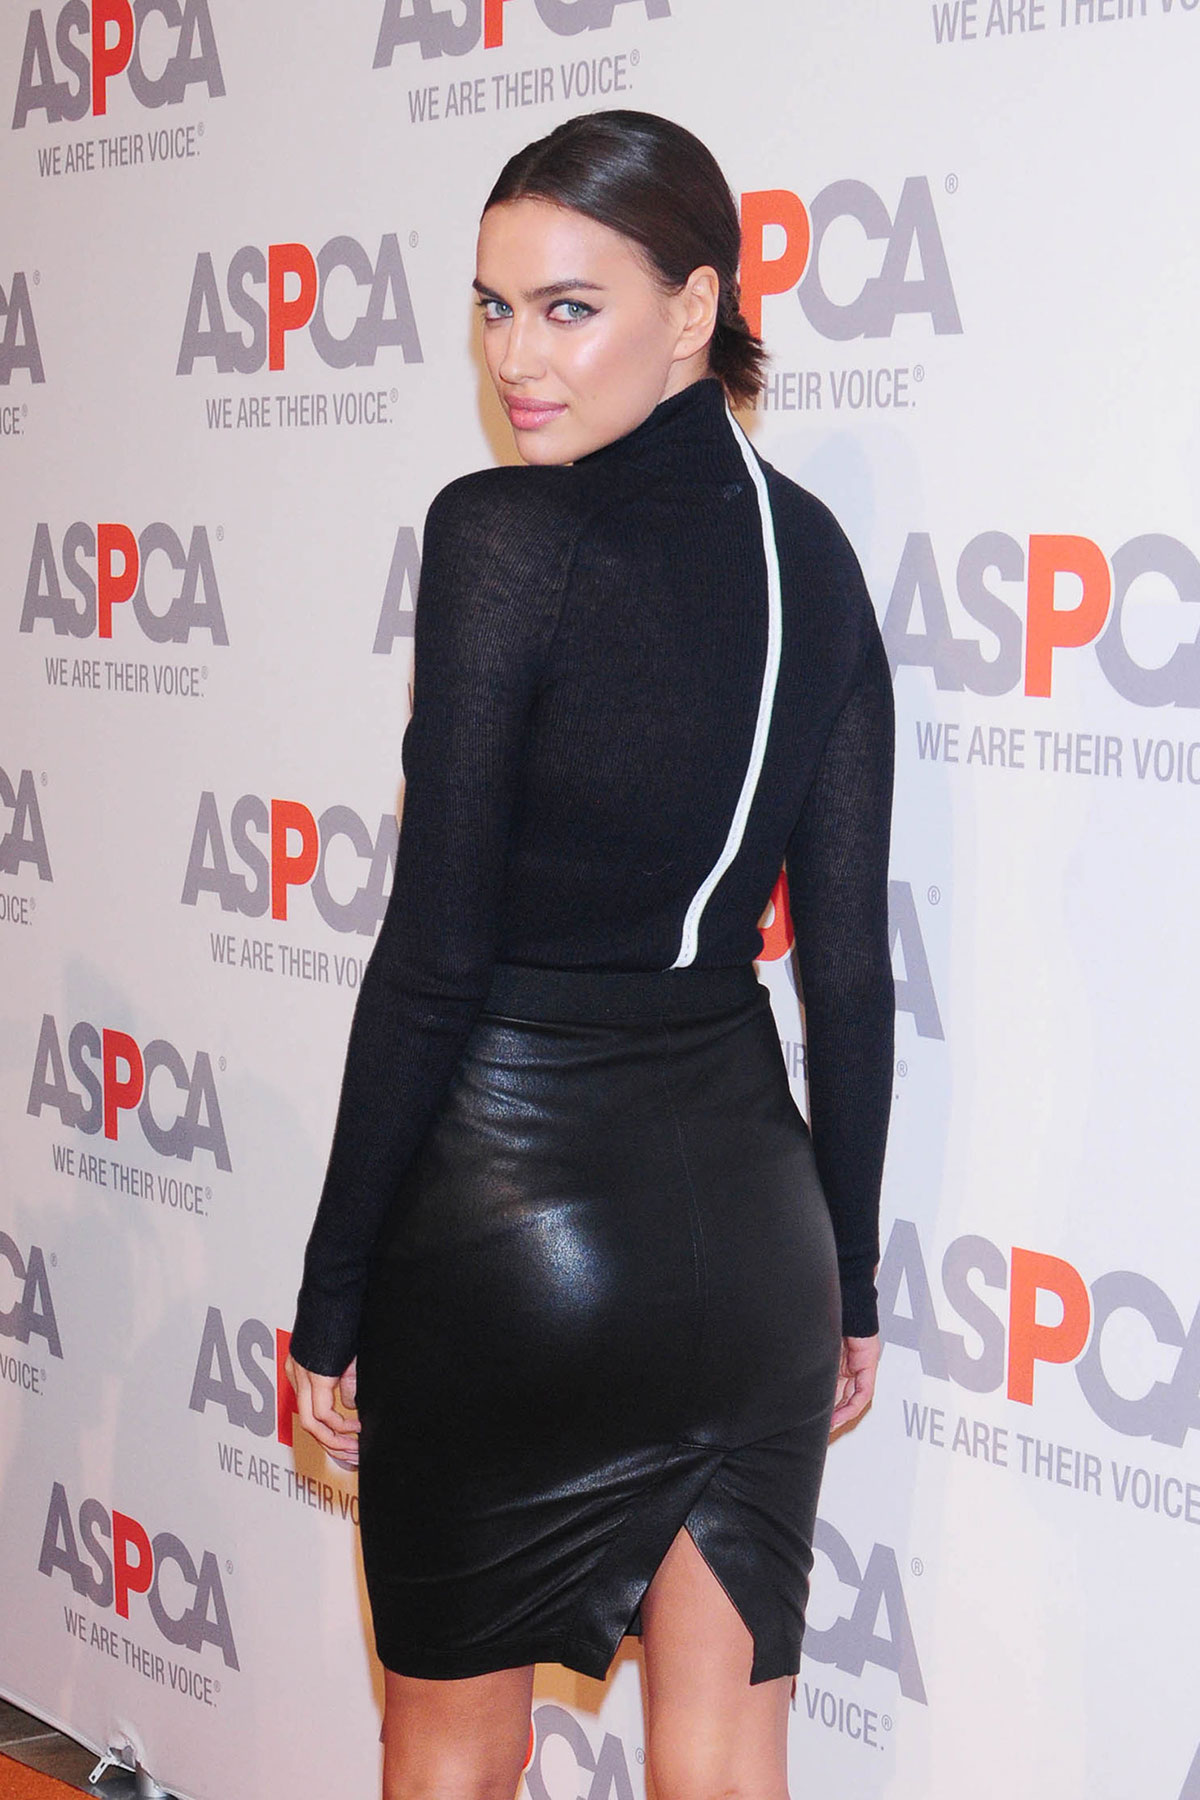 Irina Shayk attends ASPCA Young Friends Benefit